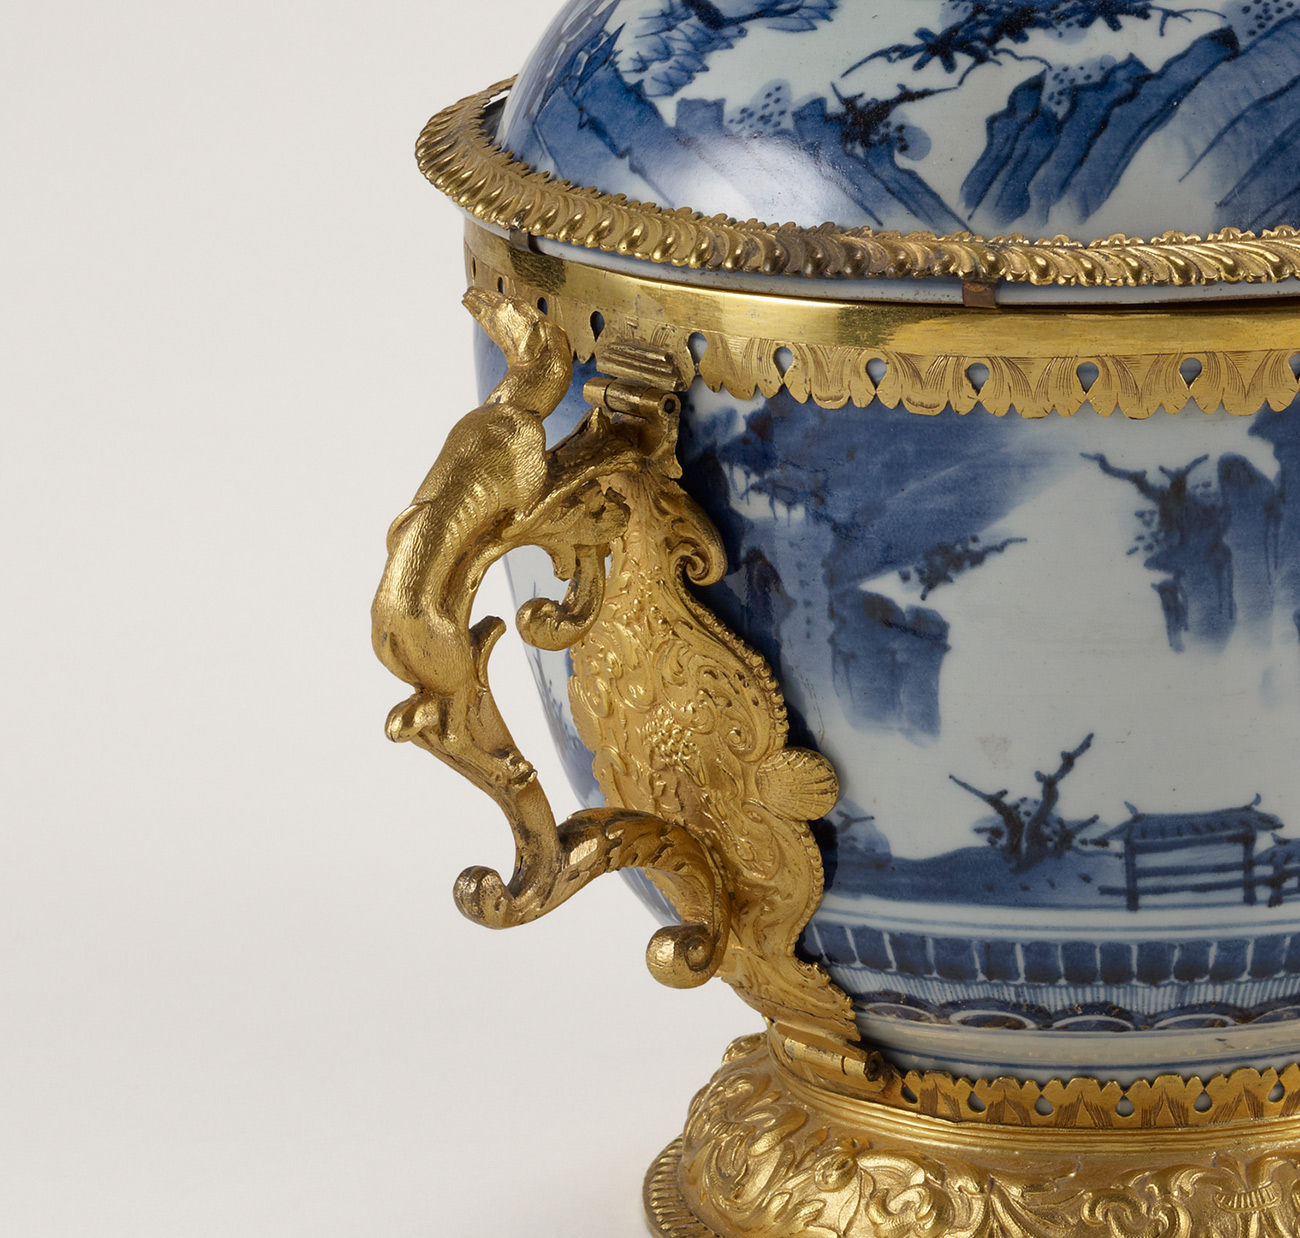 Detail of gilt-bronze handle on bowl